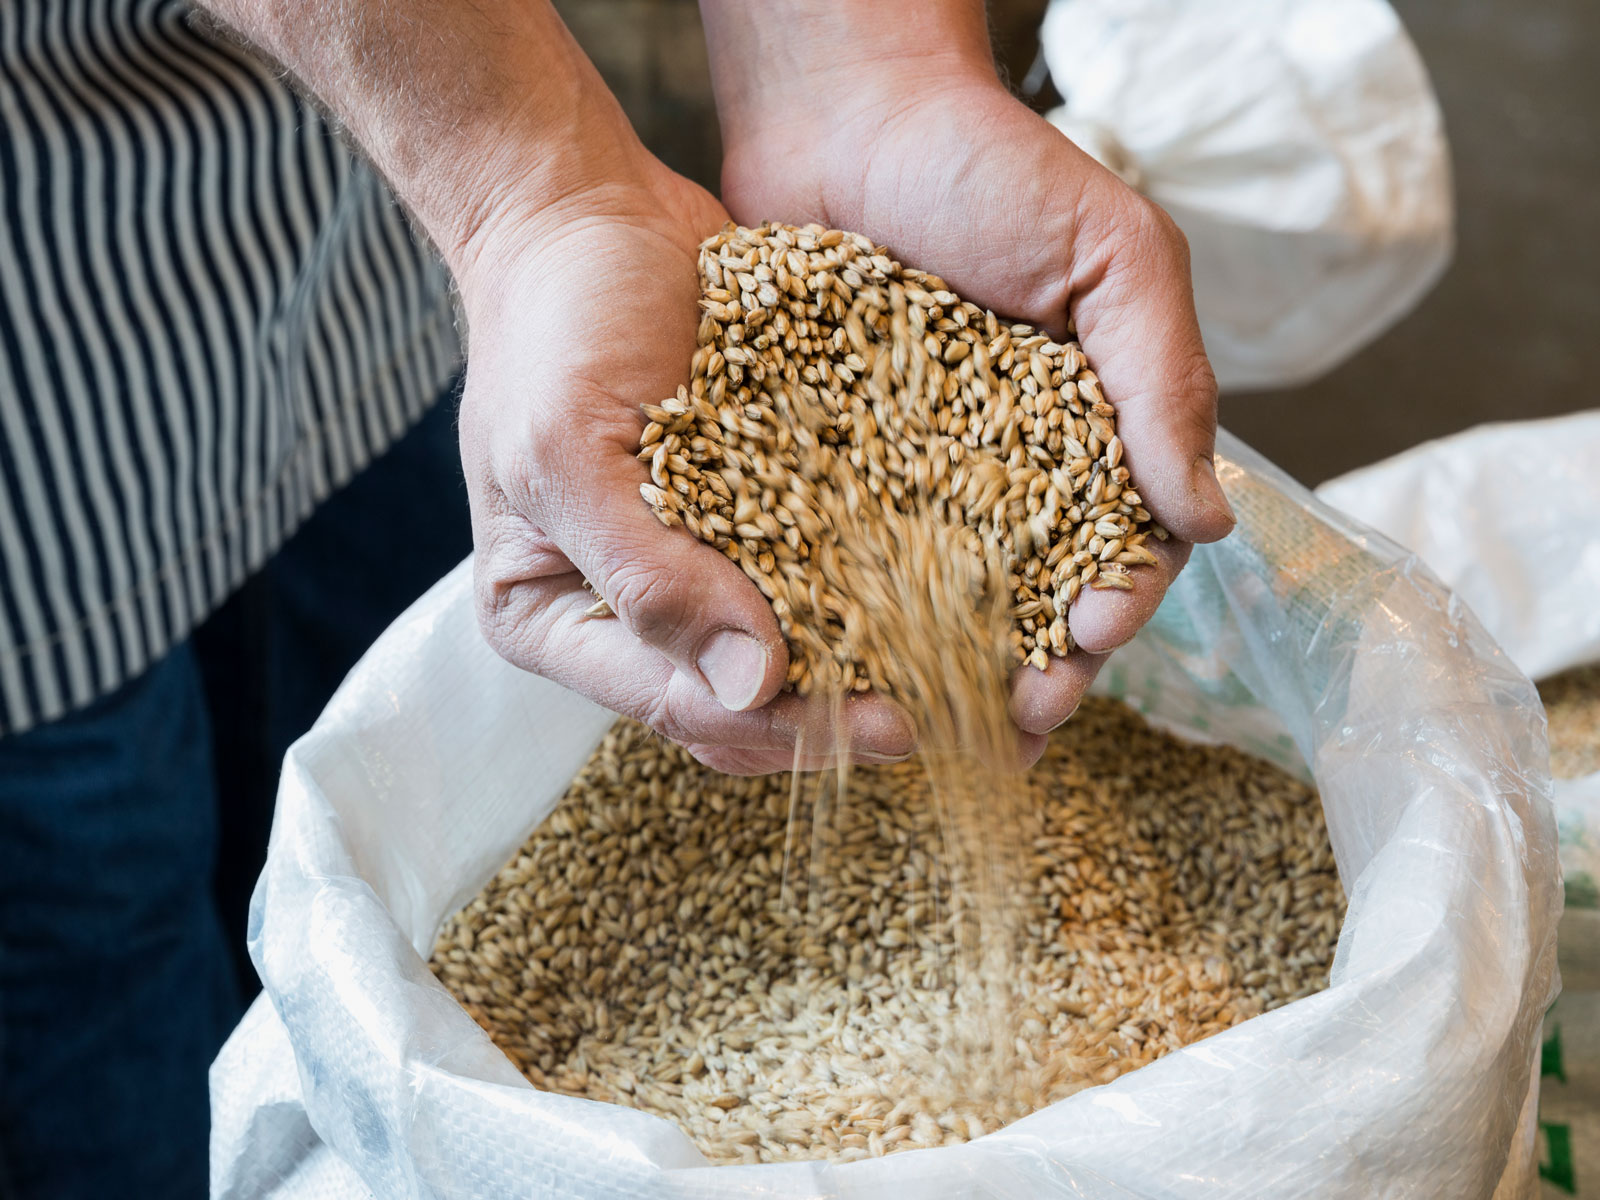 canadian-barley-shortage-FT-BLOG1118.jpg